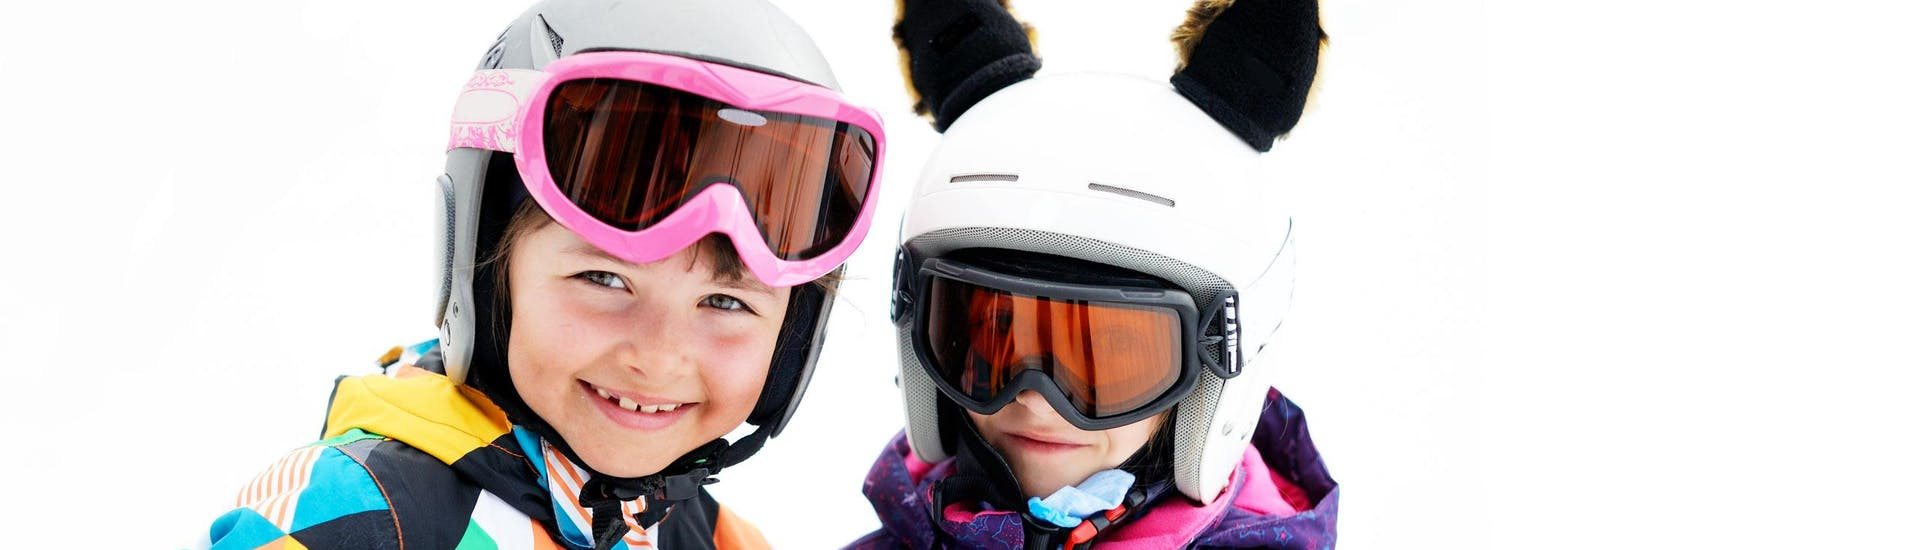 "Two young children smiling at the camera during one of the Kids Ski Lessons ""All-in-One"" (13-16 y.) for All Levels organised by Ski School Adventure Rauris."